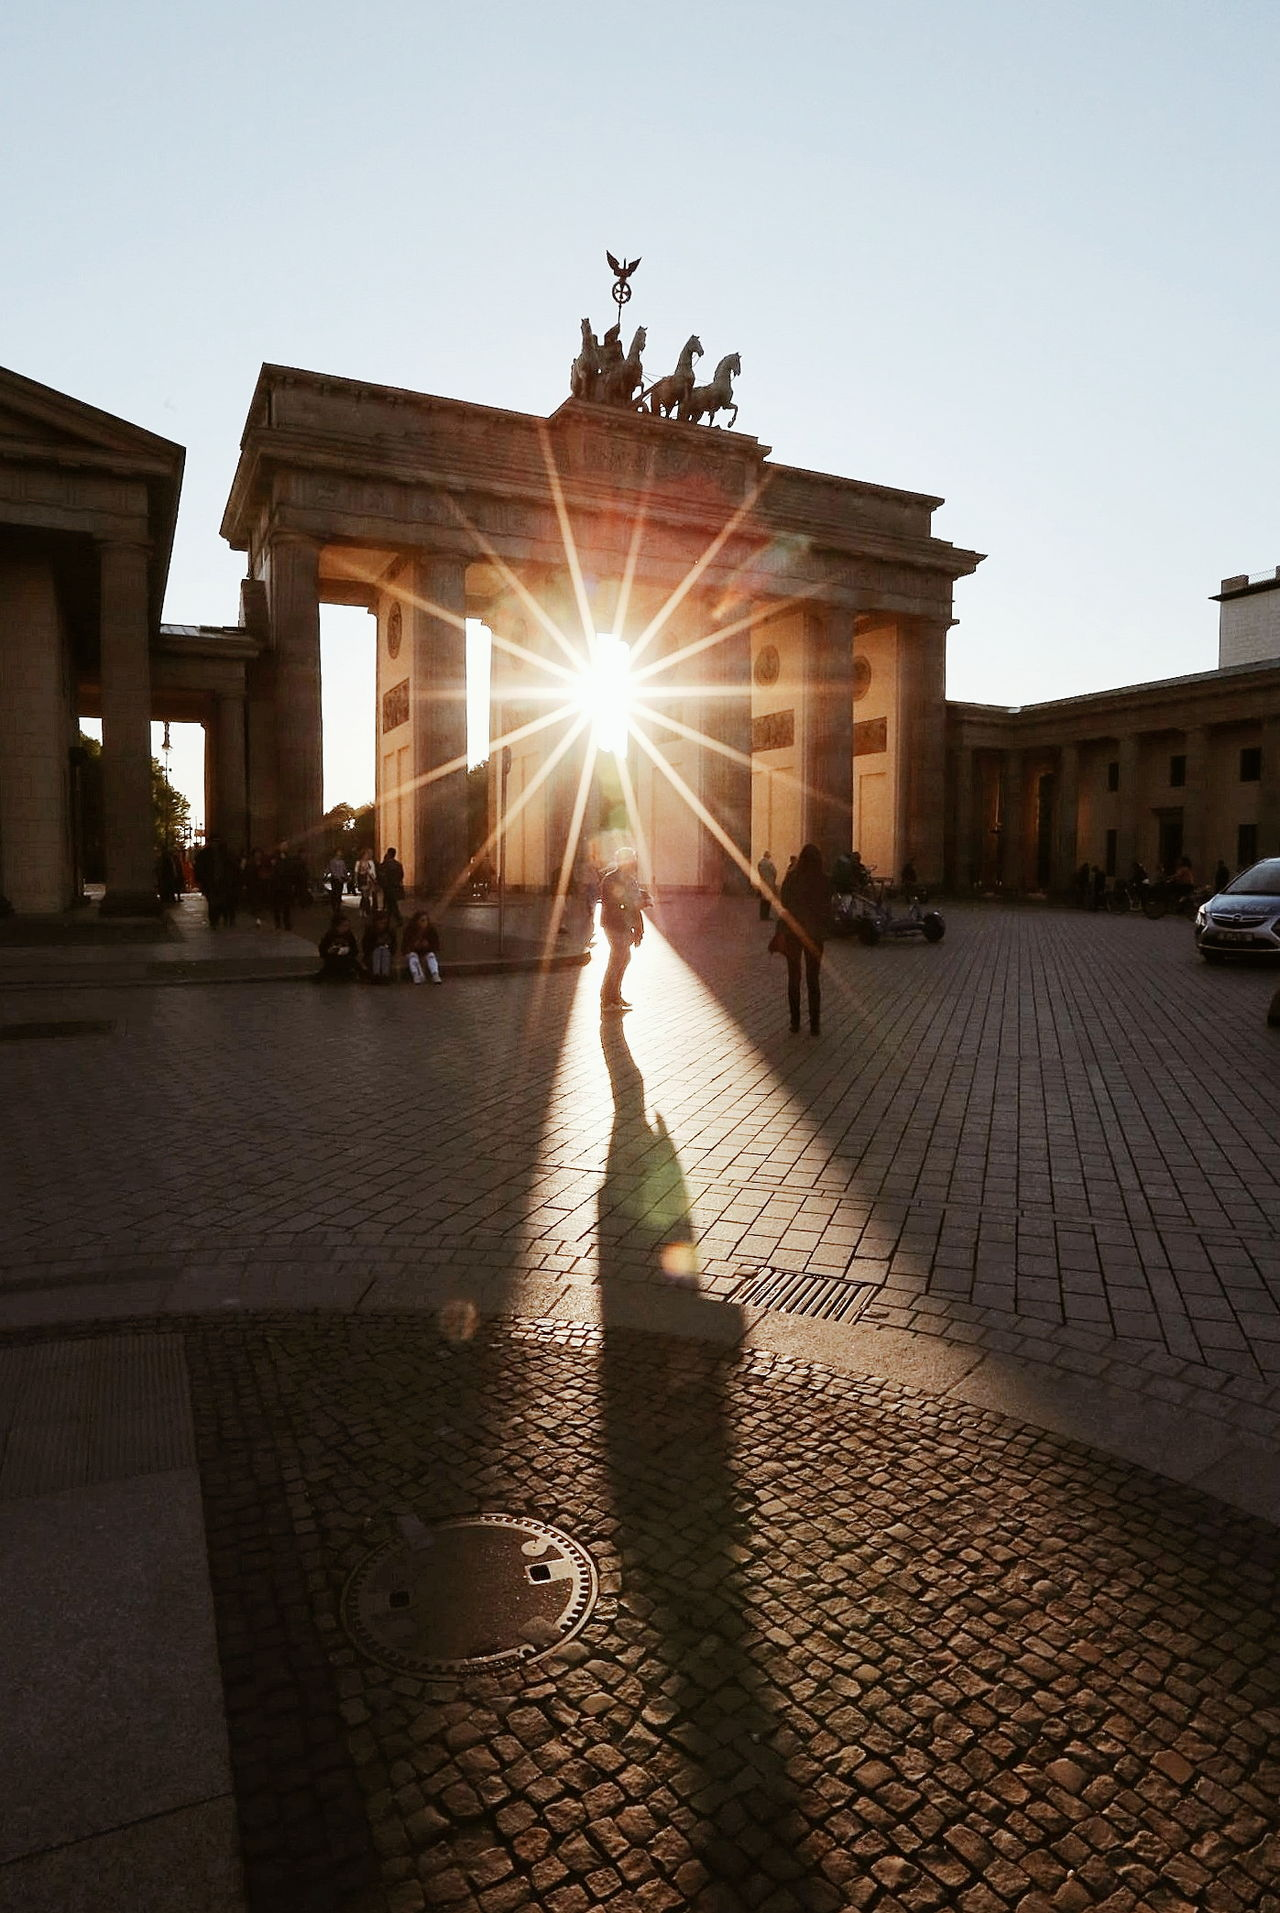 Travel Destinations History People Sunlight Adult City Gate Shadow Built Structure Architecture Adults Only Outdoors Full Length Sky Only Men Day Politics And Government City One Person Ancient Civilization One Man Only Sunlight Eye4photography  Berlin Photography